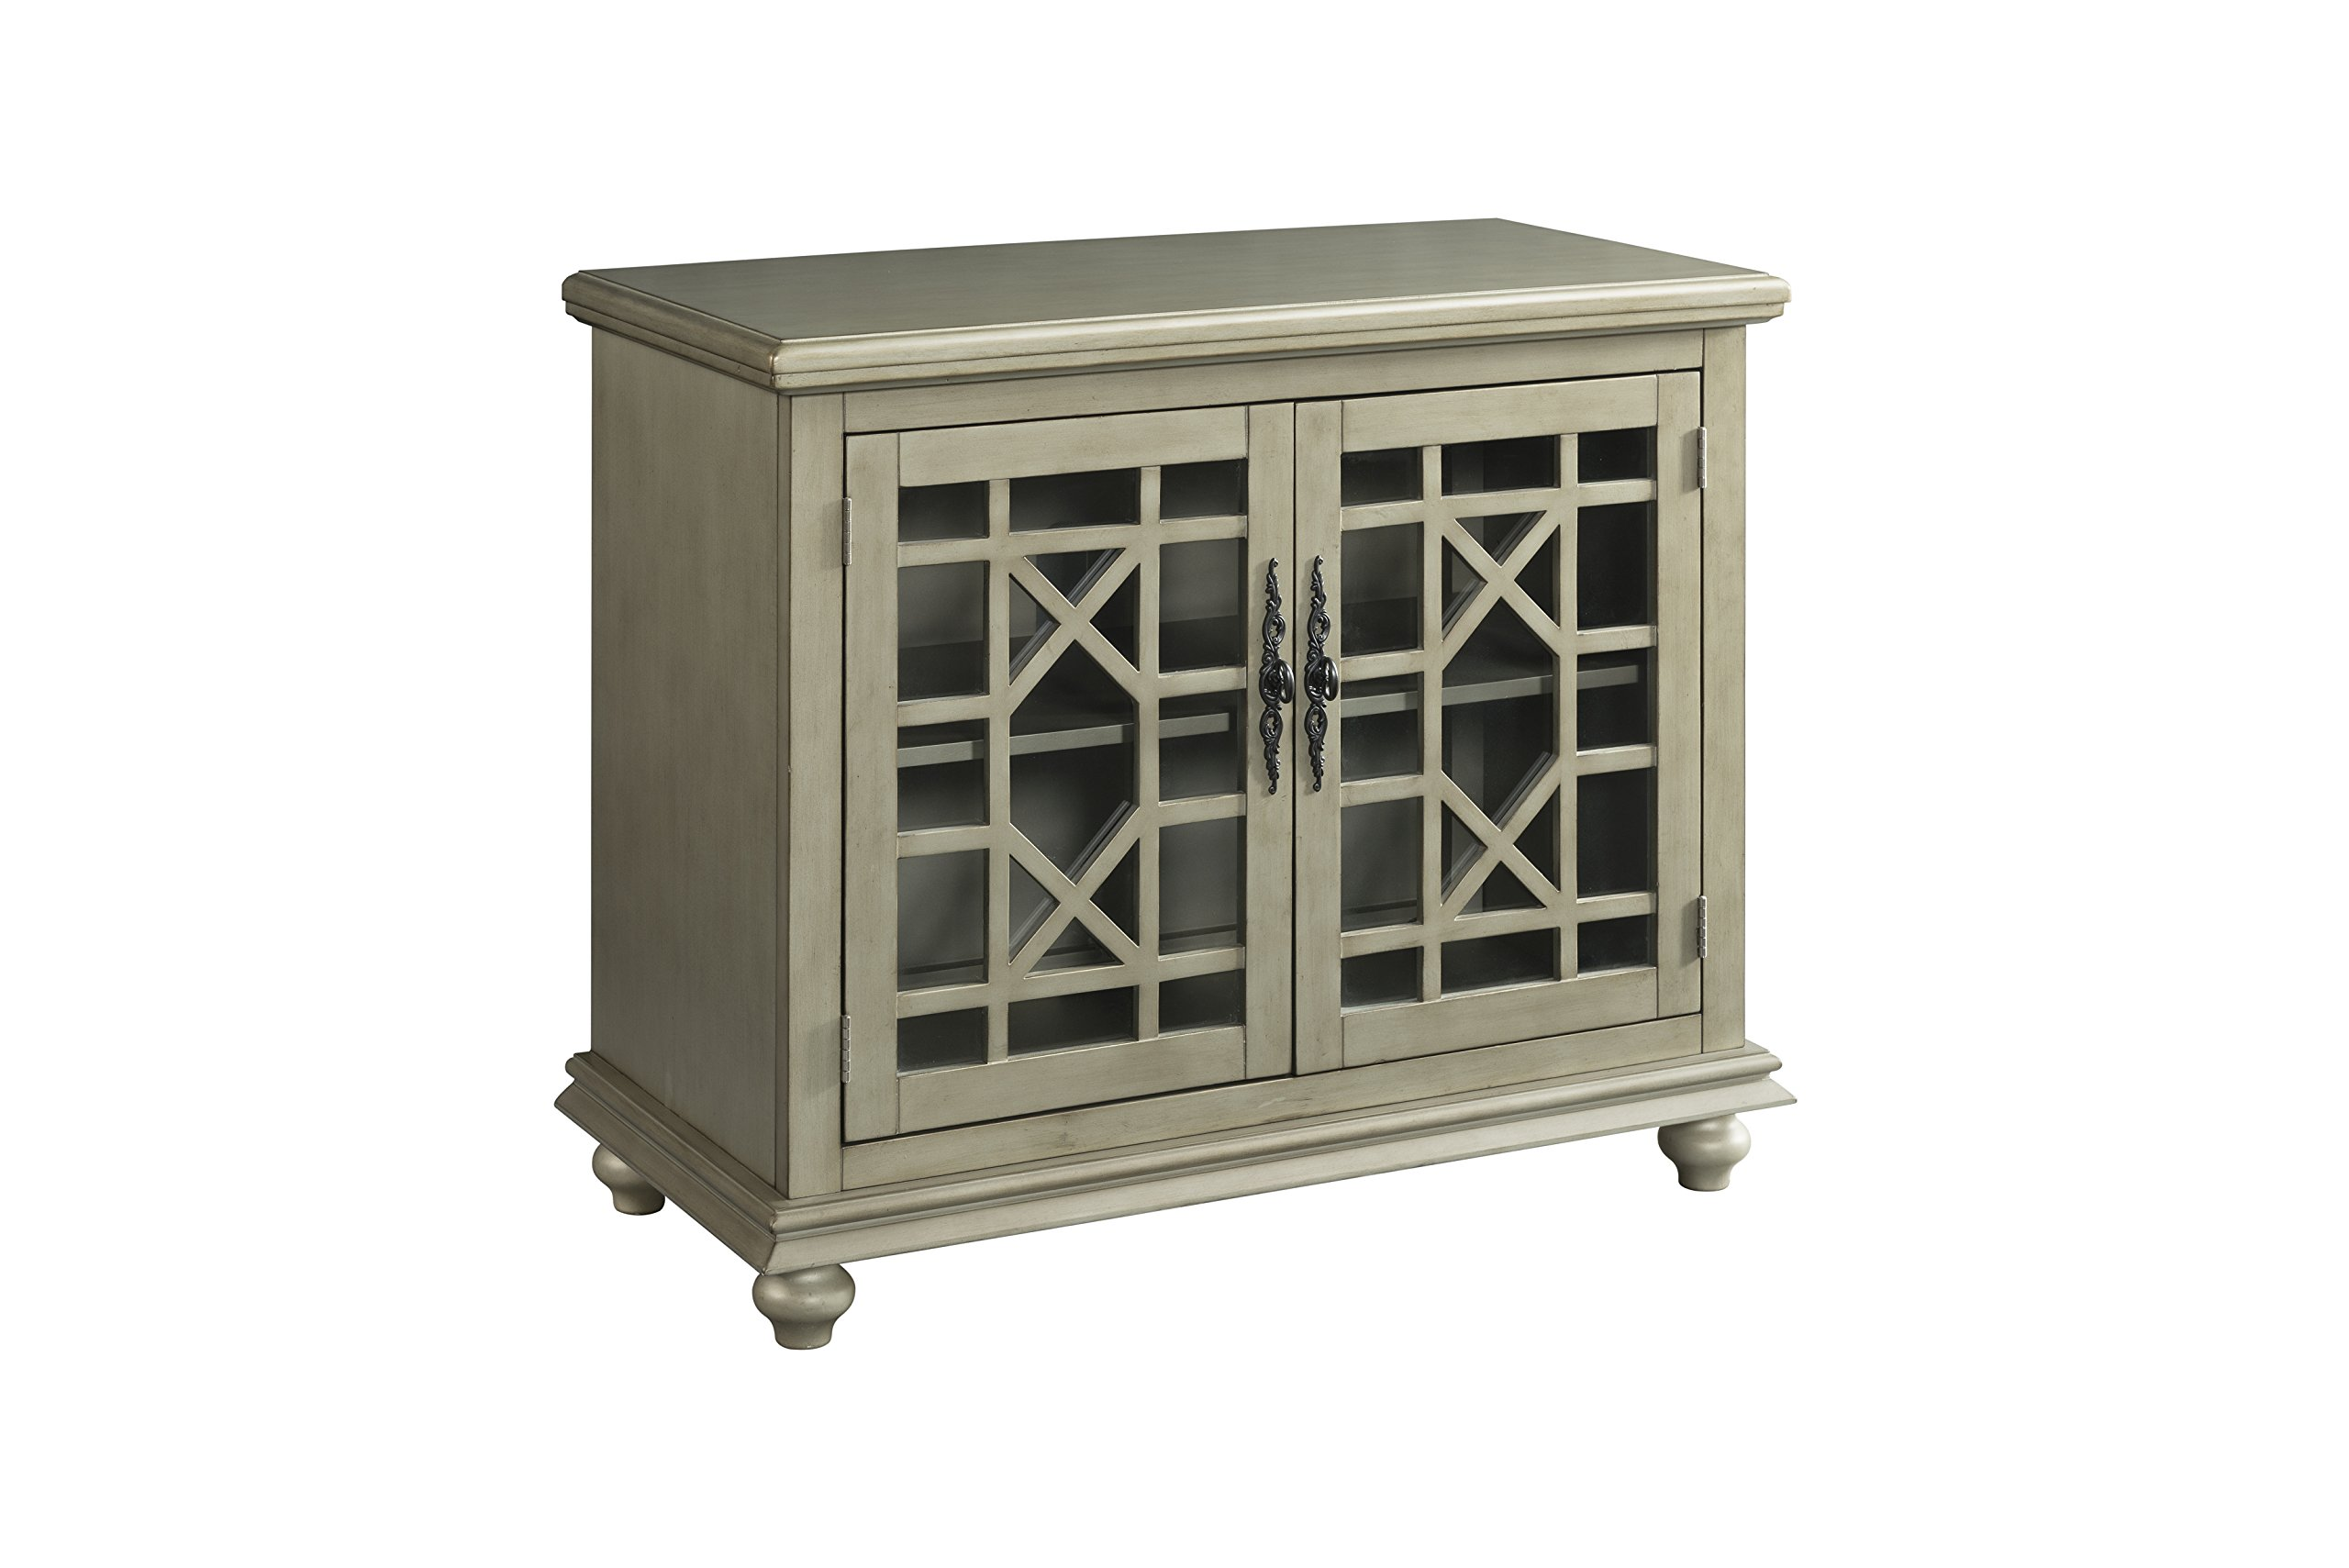 Martin Svensson Home 91034 Small Spaces 2 Door Accent Cabinet-TV Stand, 38'' W x 32'' H, Antique Silver